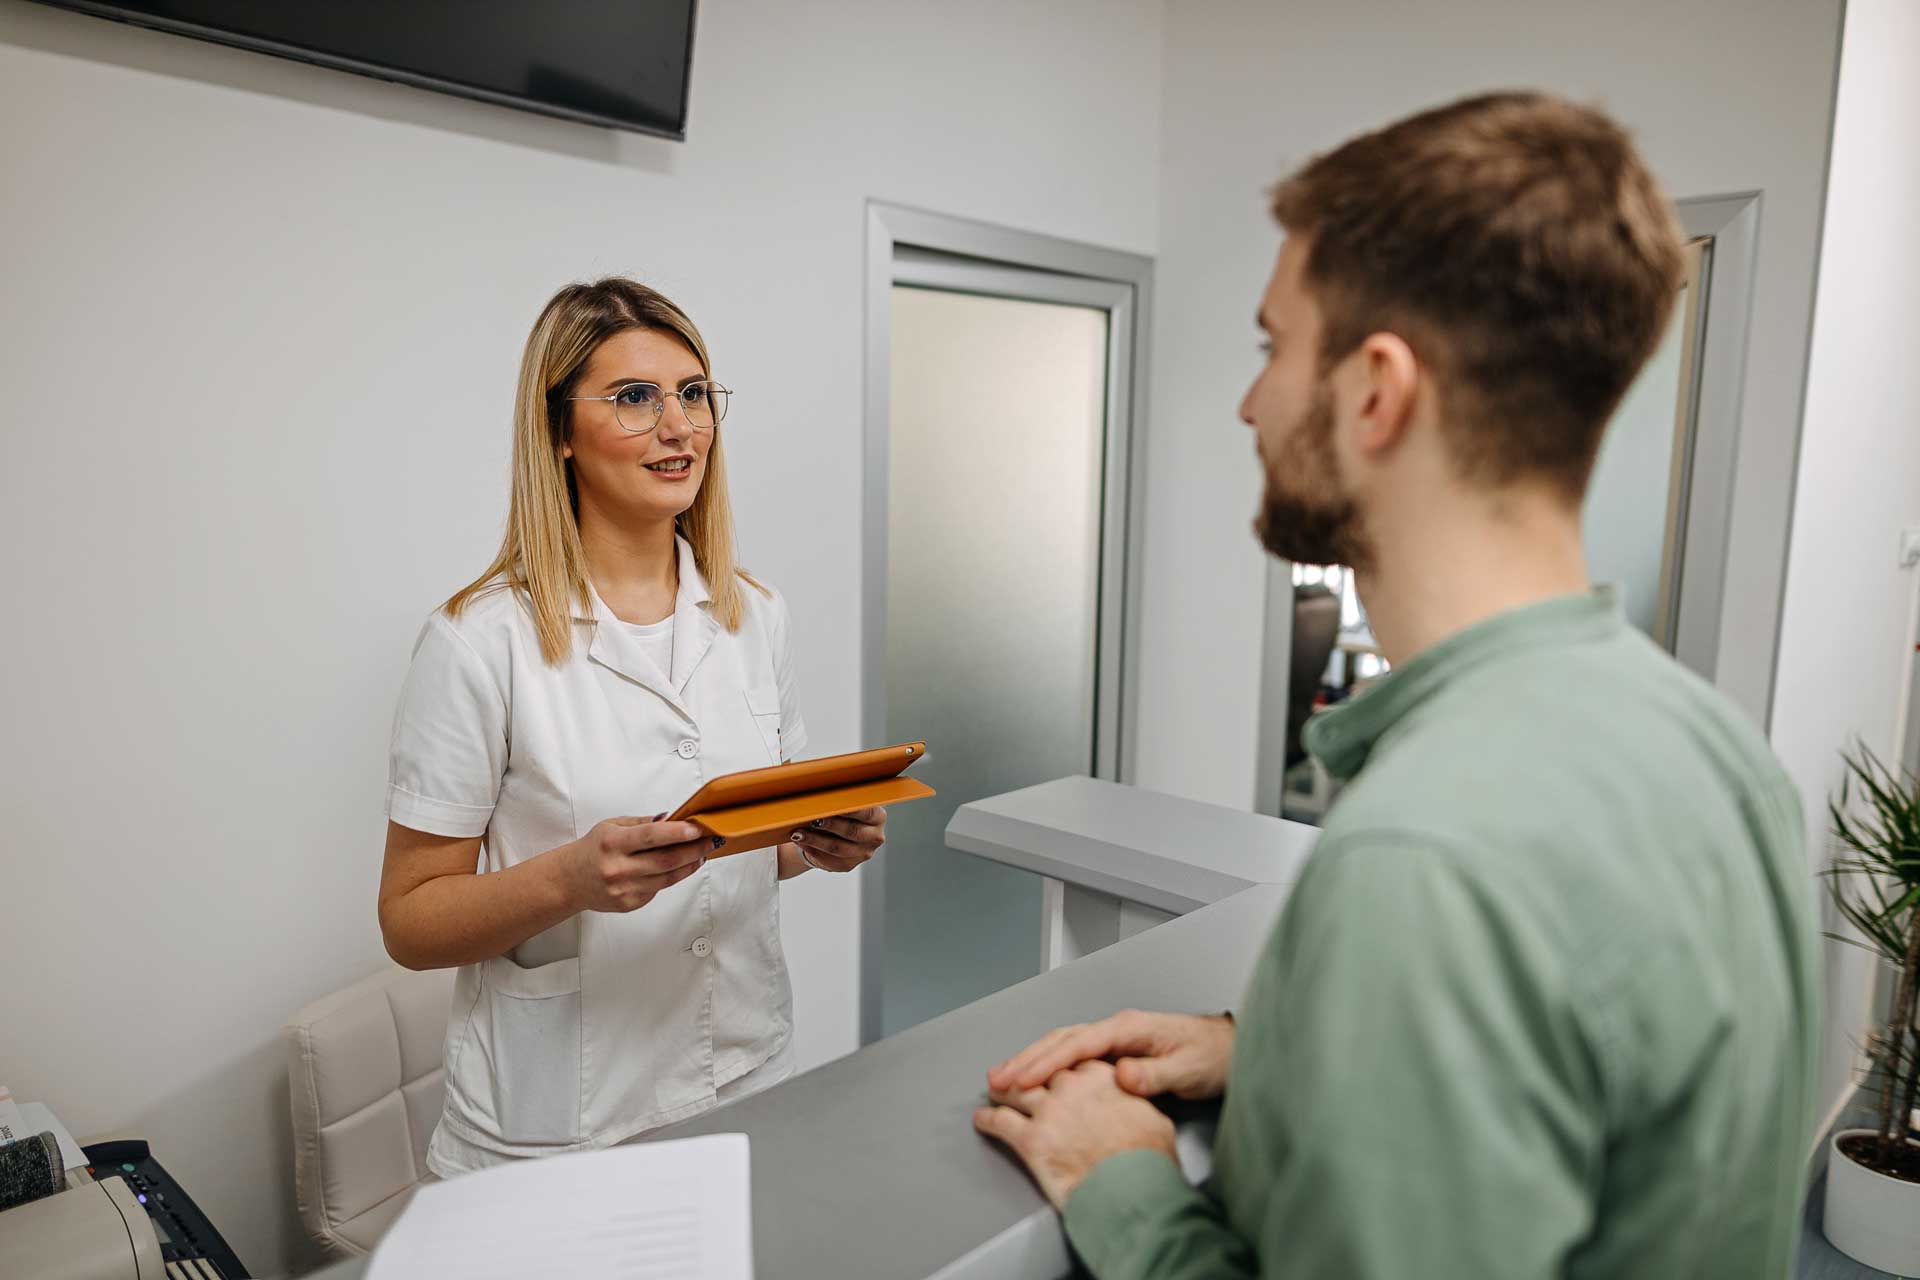 receptionist helping a patient using sentact technology